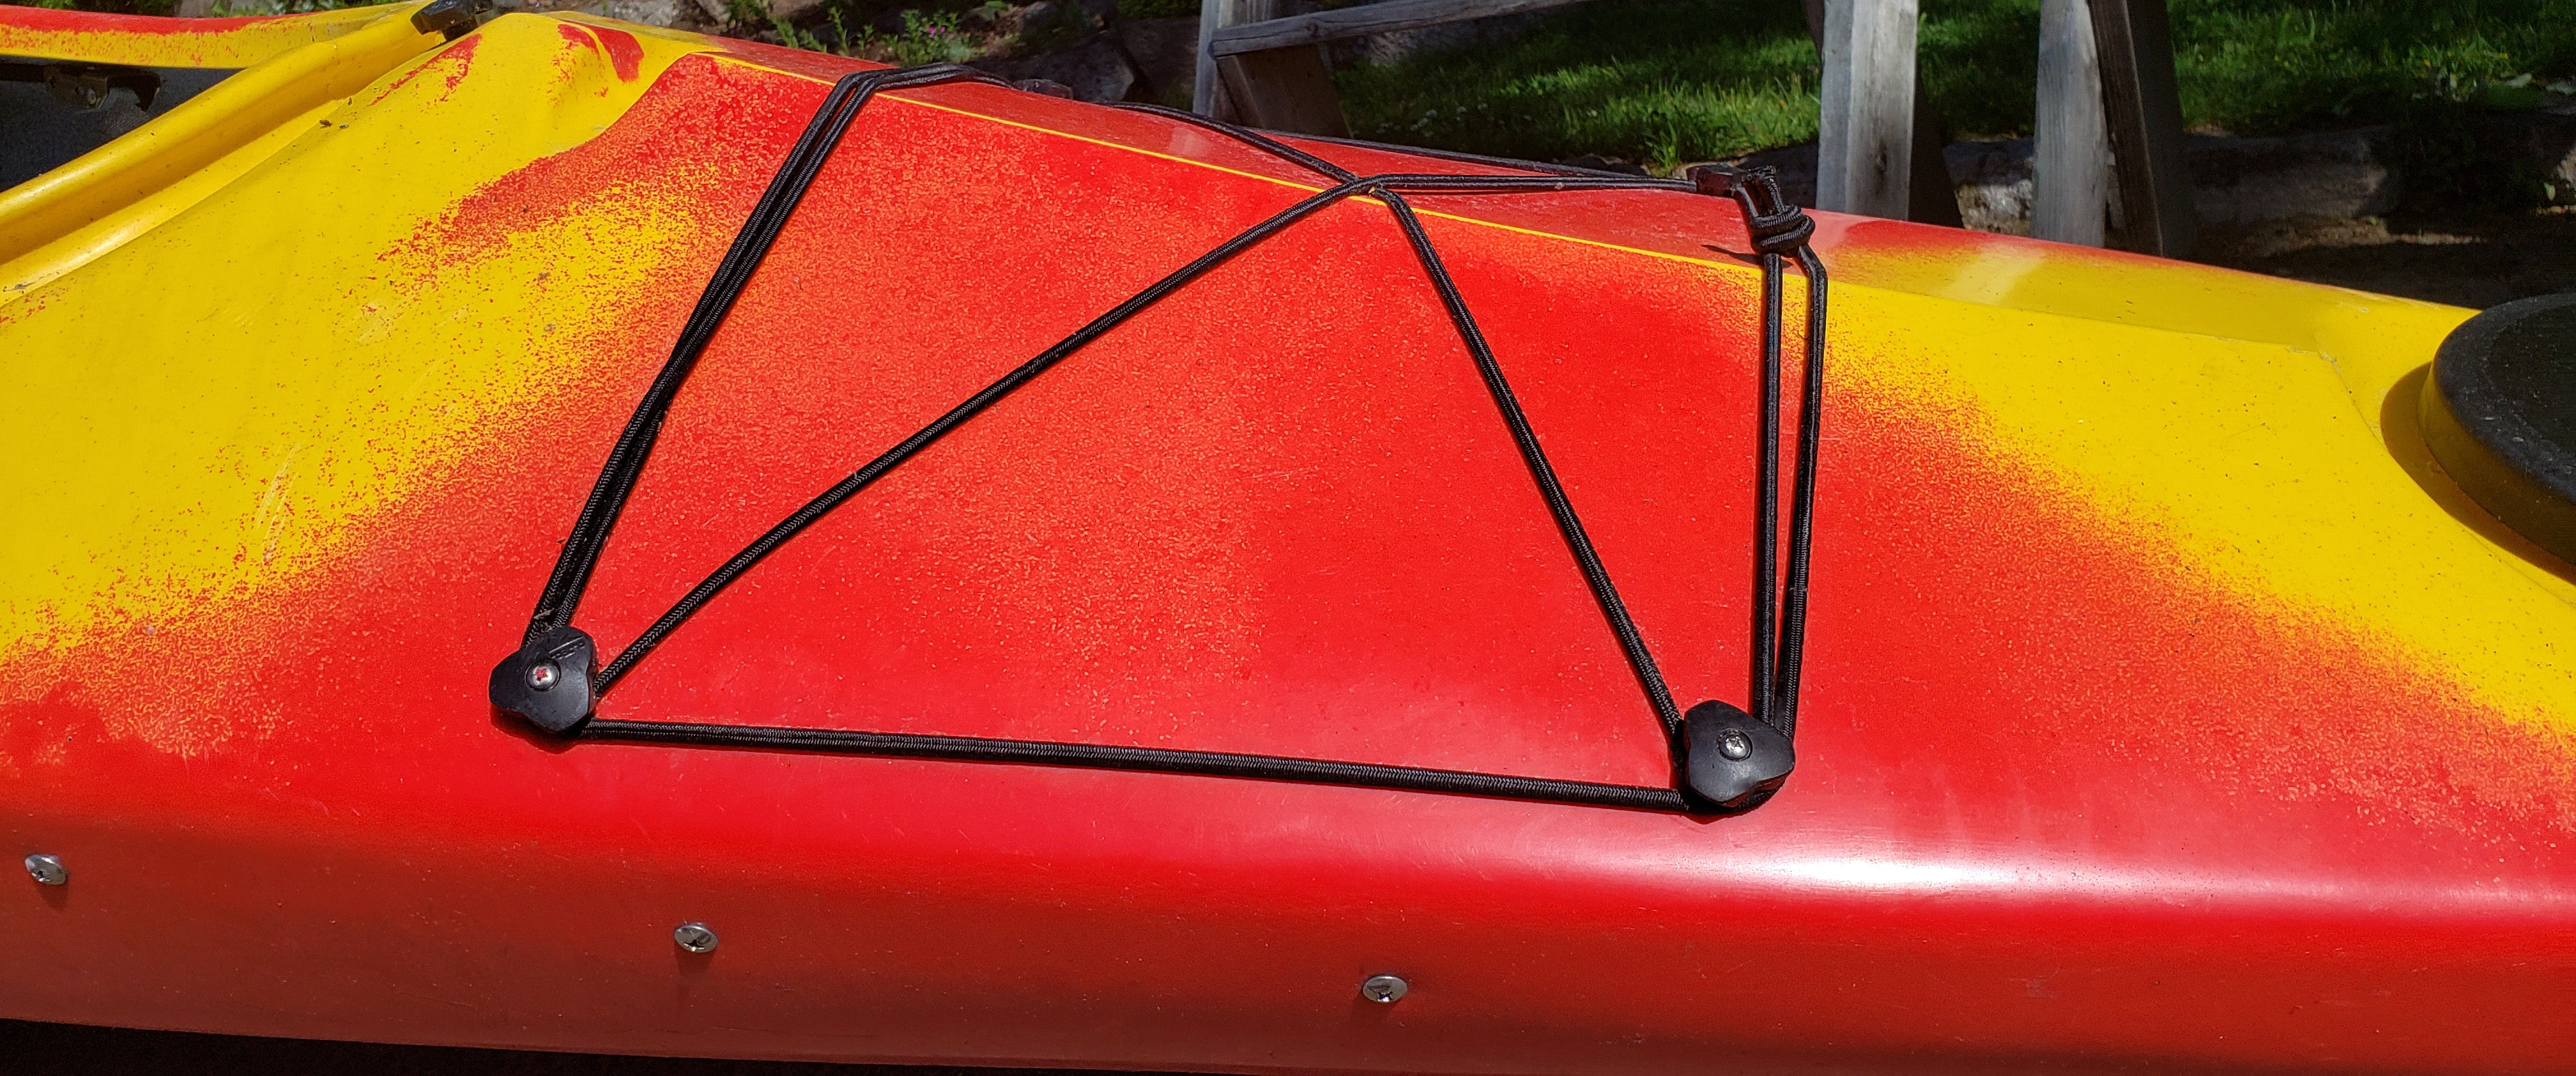 Kayak Deck Mount for shock cord